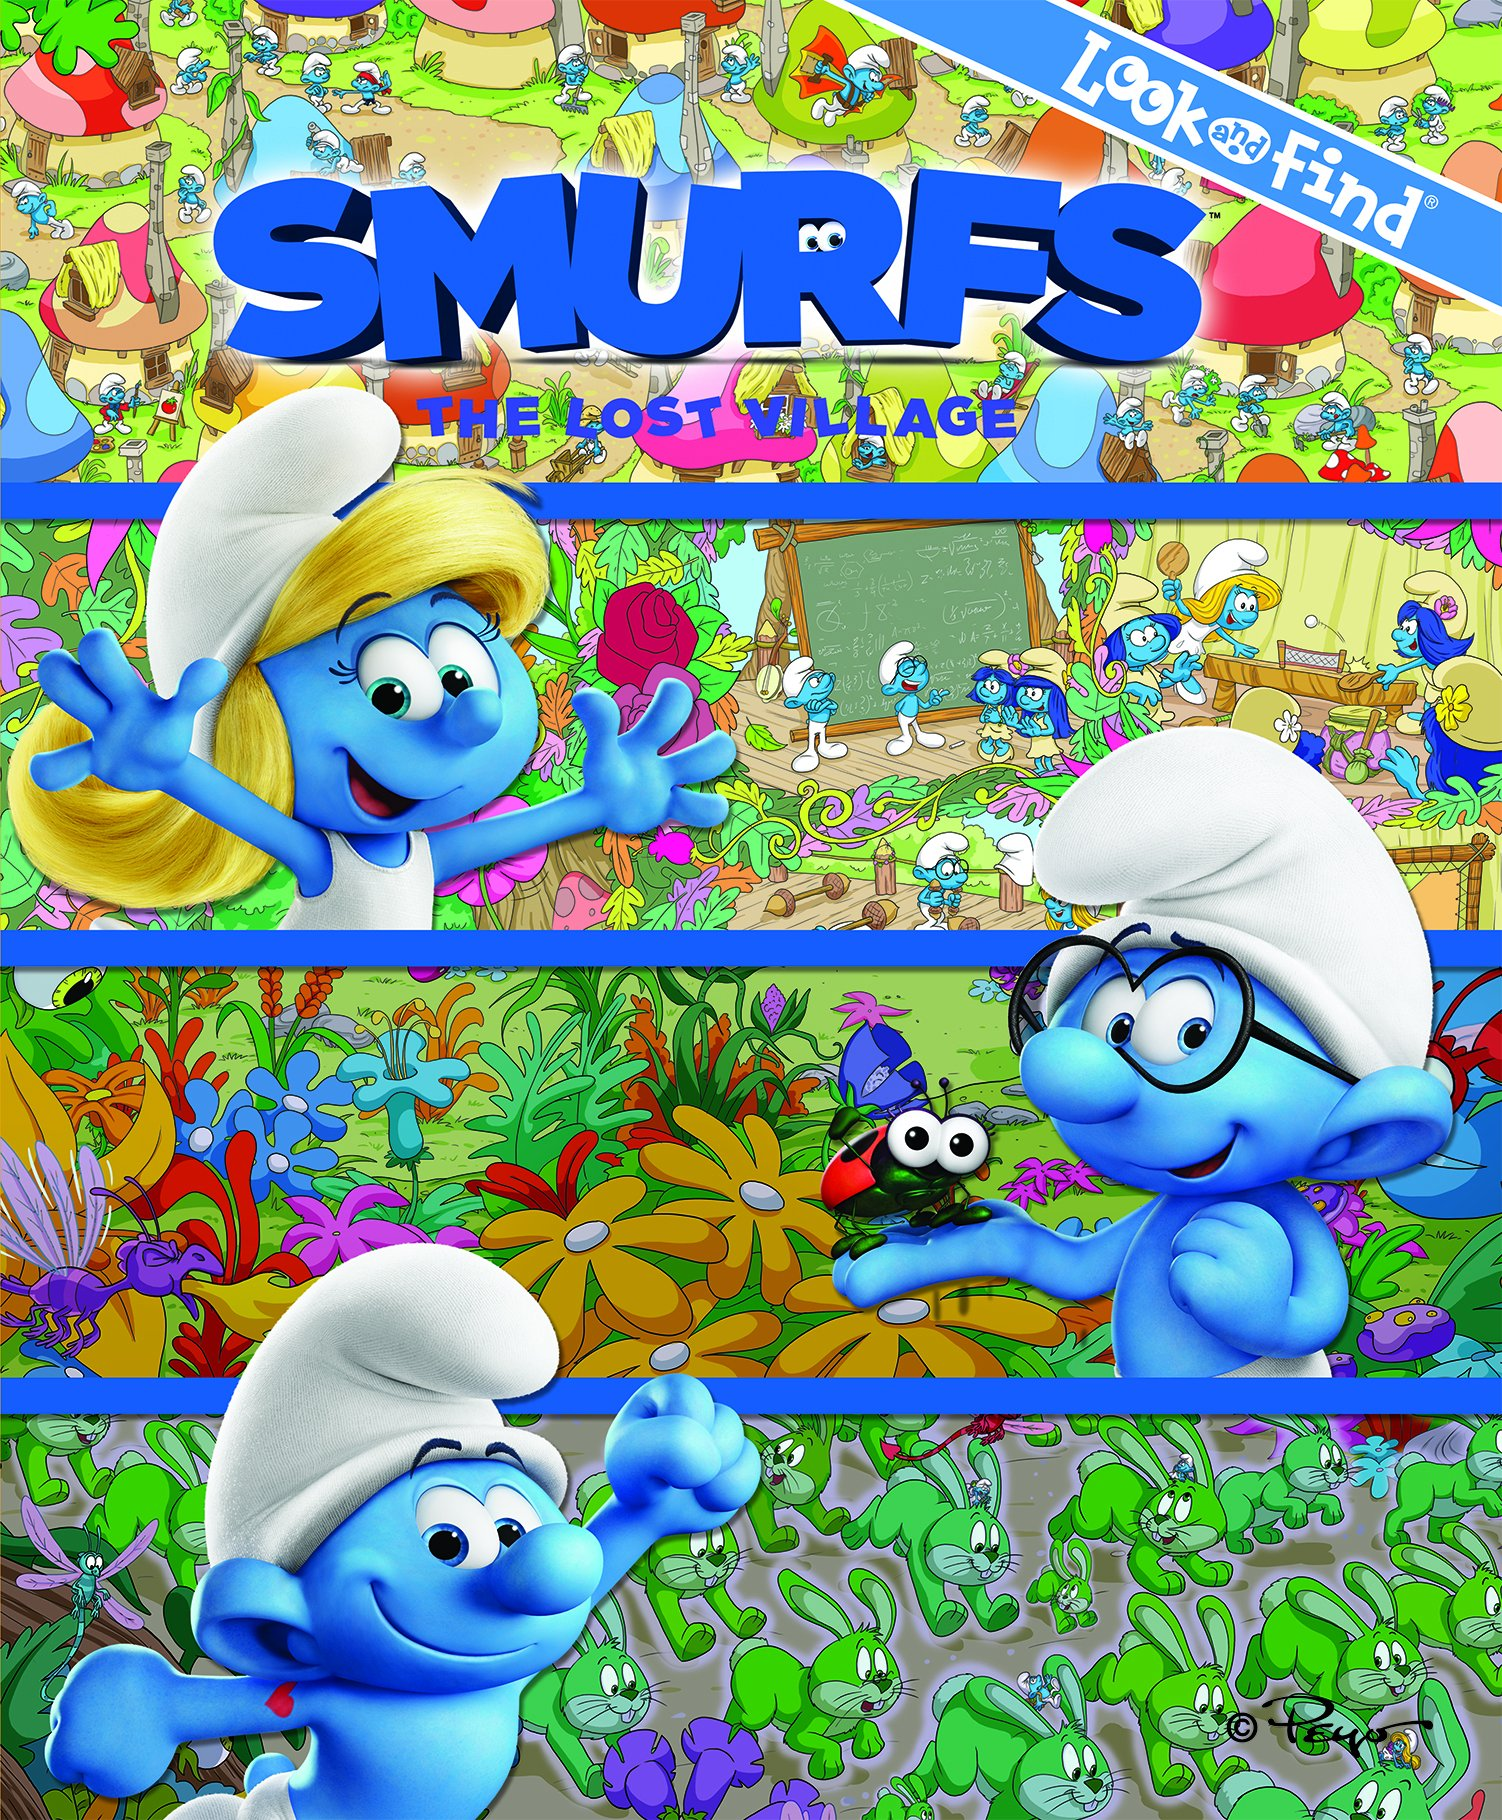 Smurfs 3 Look And Find The Lost Village Pi Kids Phoenix Editors 9781503715929 Amazon Books